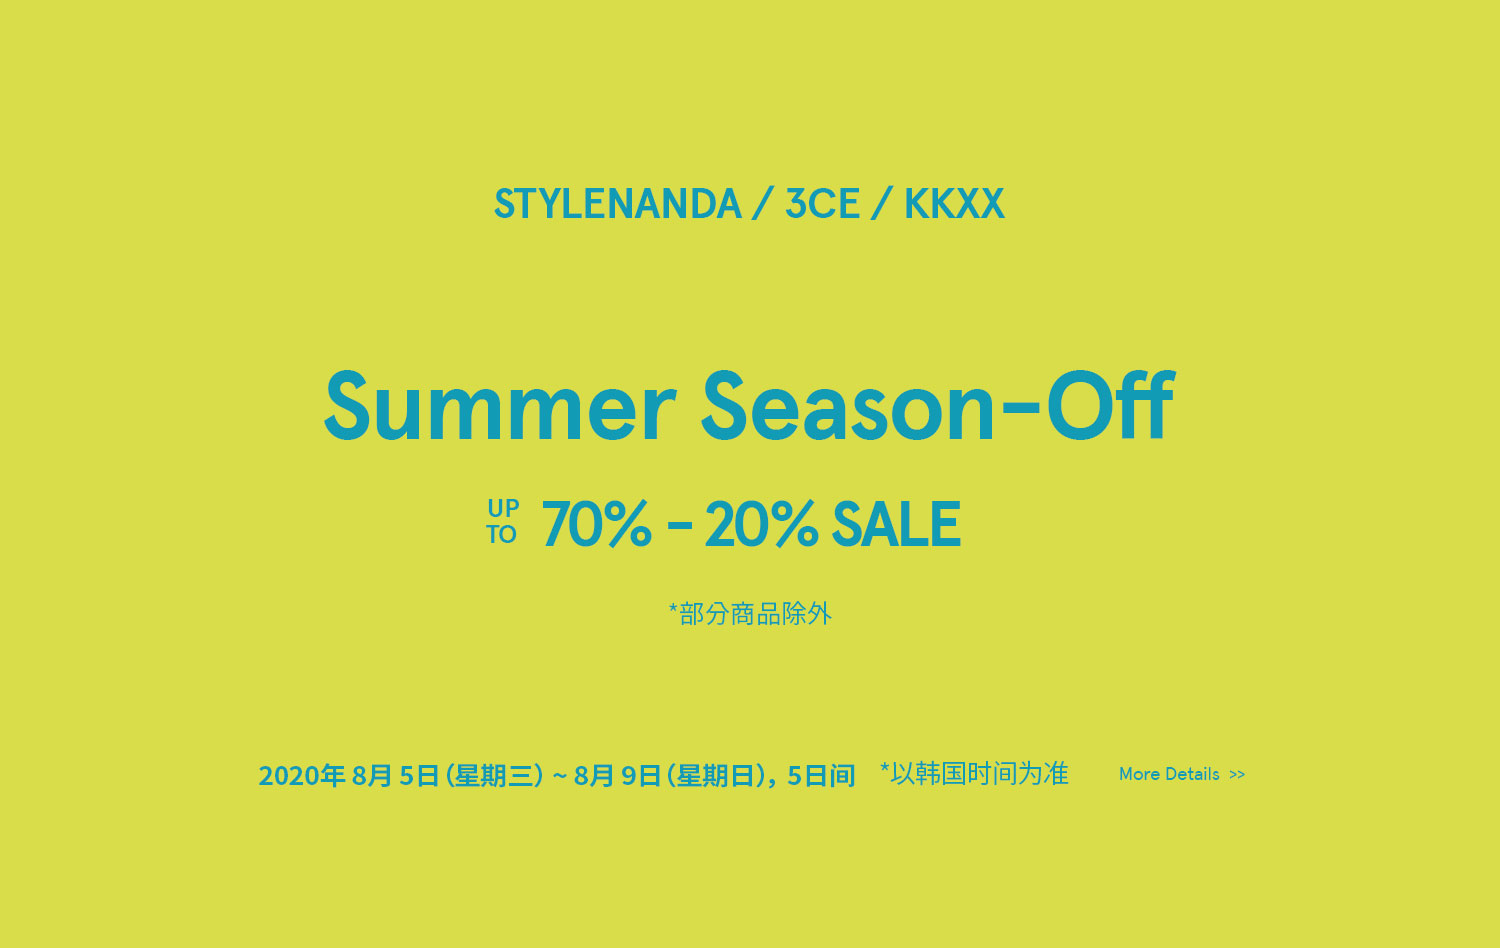 SUMMER SEASON-OFF SALE